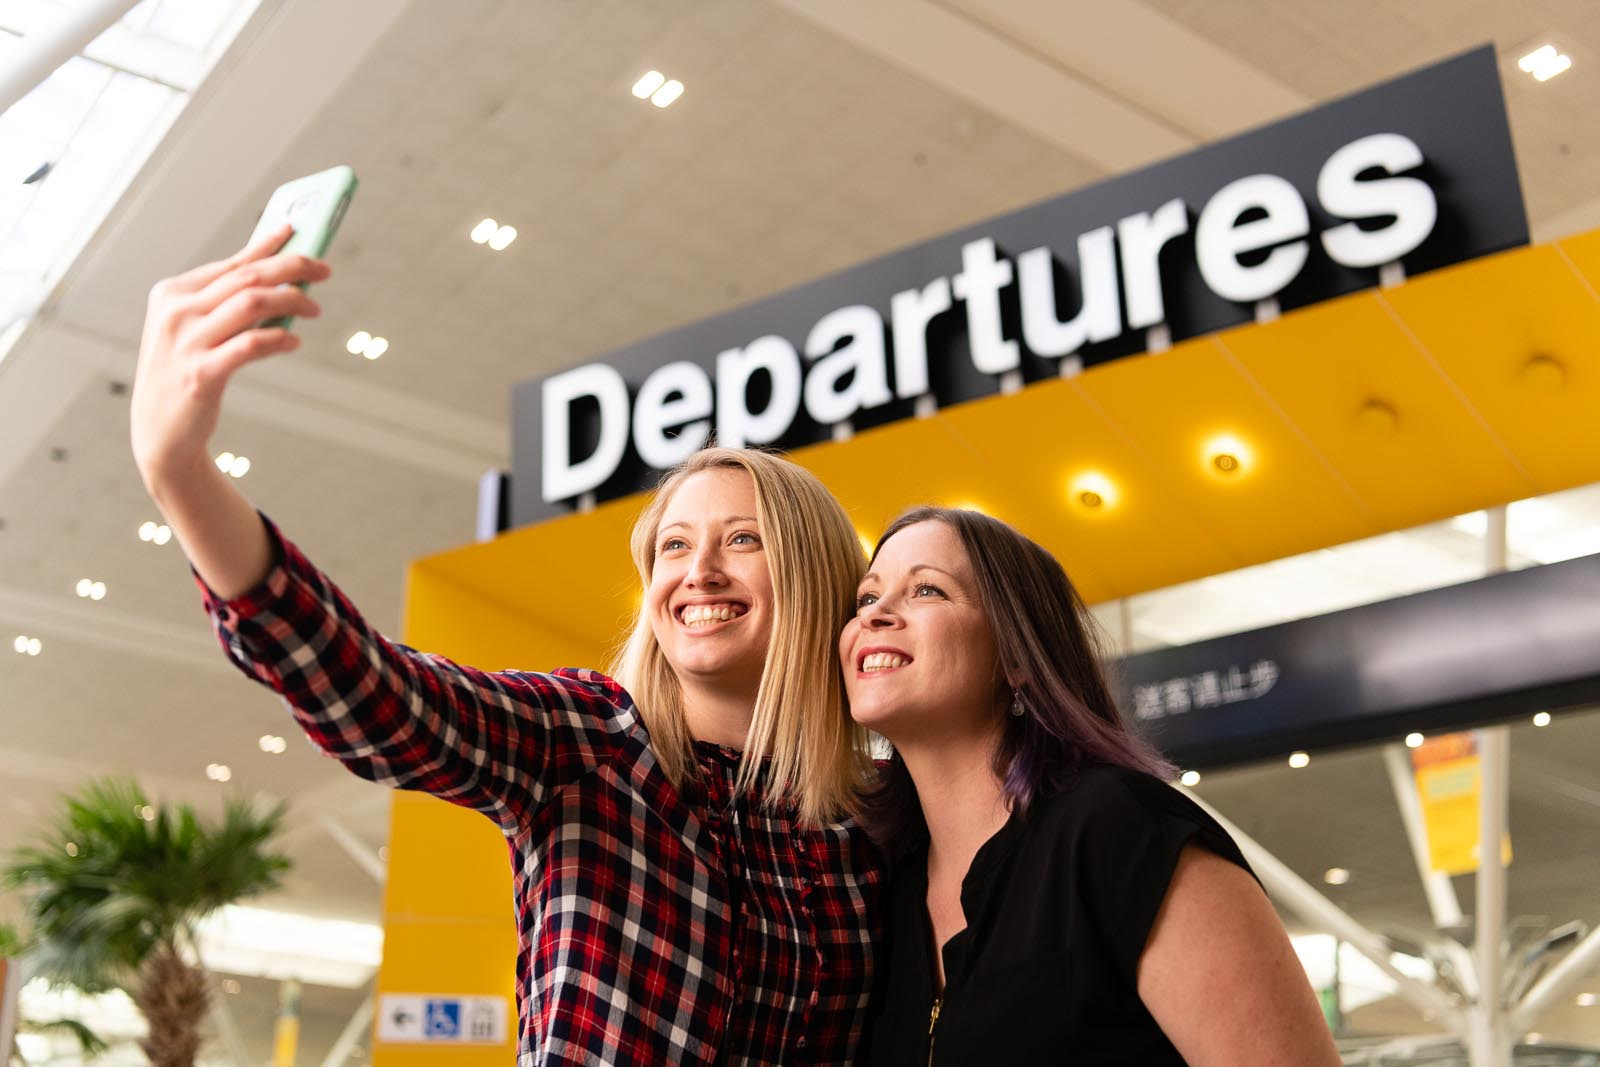 Two girls take a selfie at the BNE Airport Departures gate | Top tips for travelling in a large group while keeping friendships intact